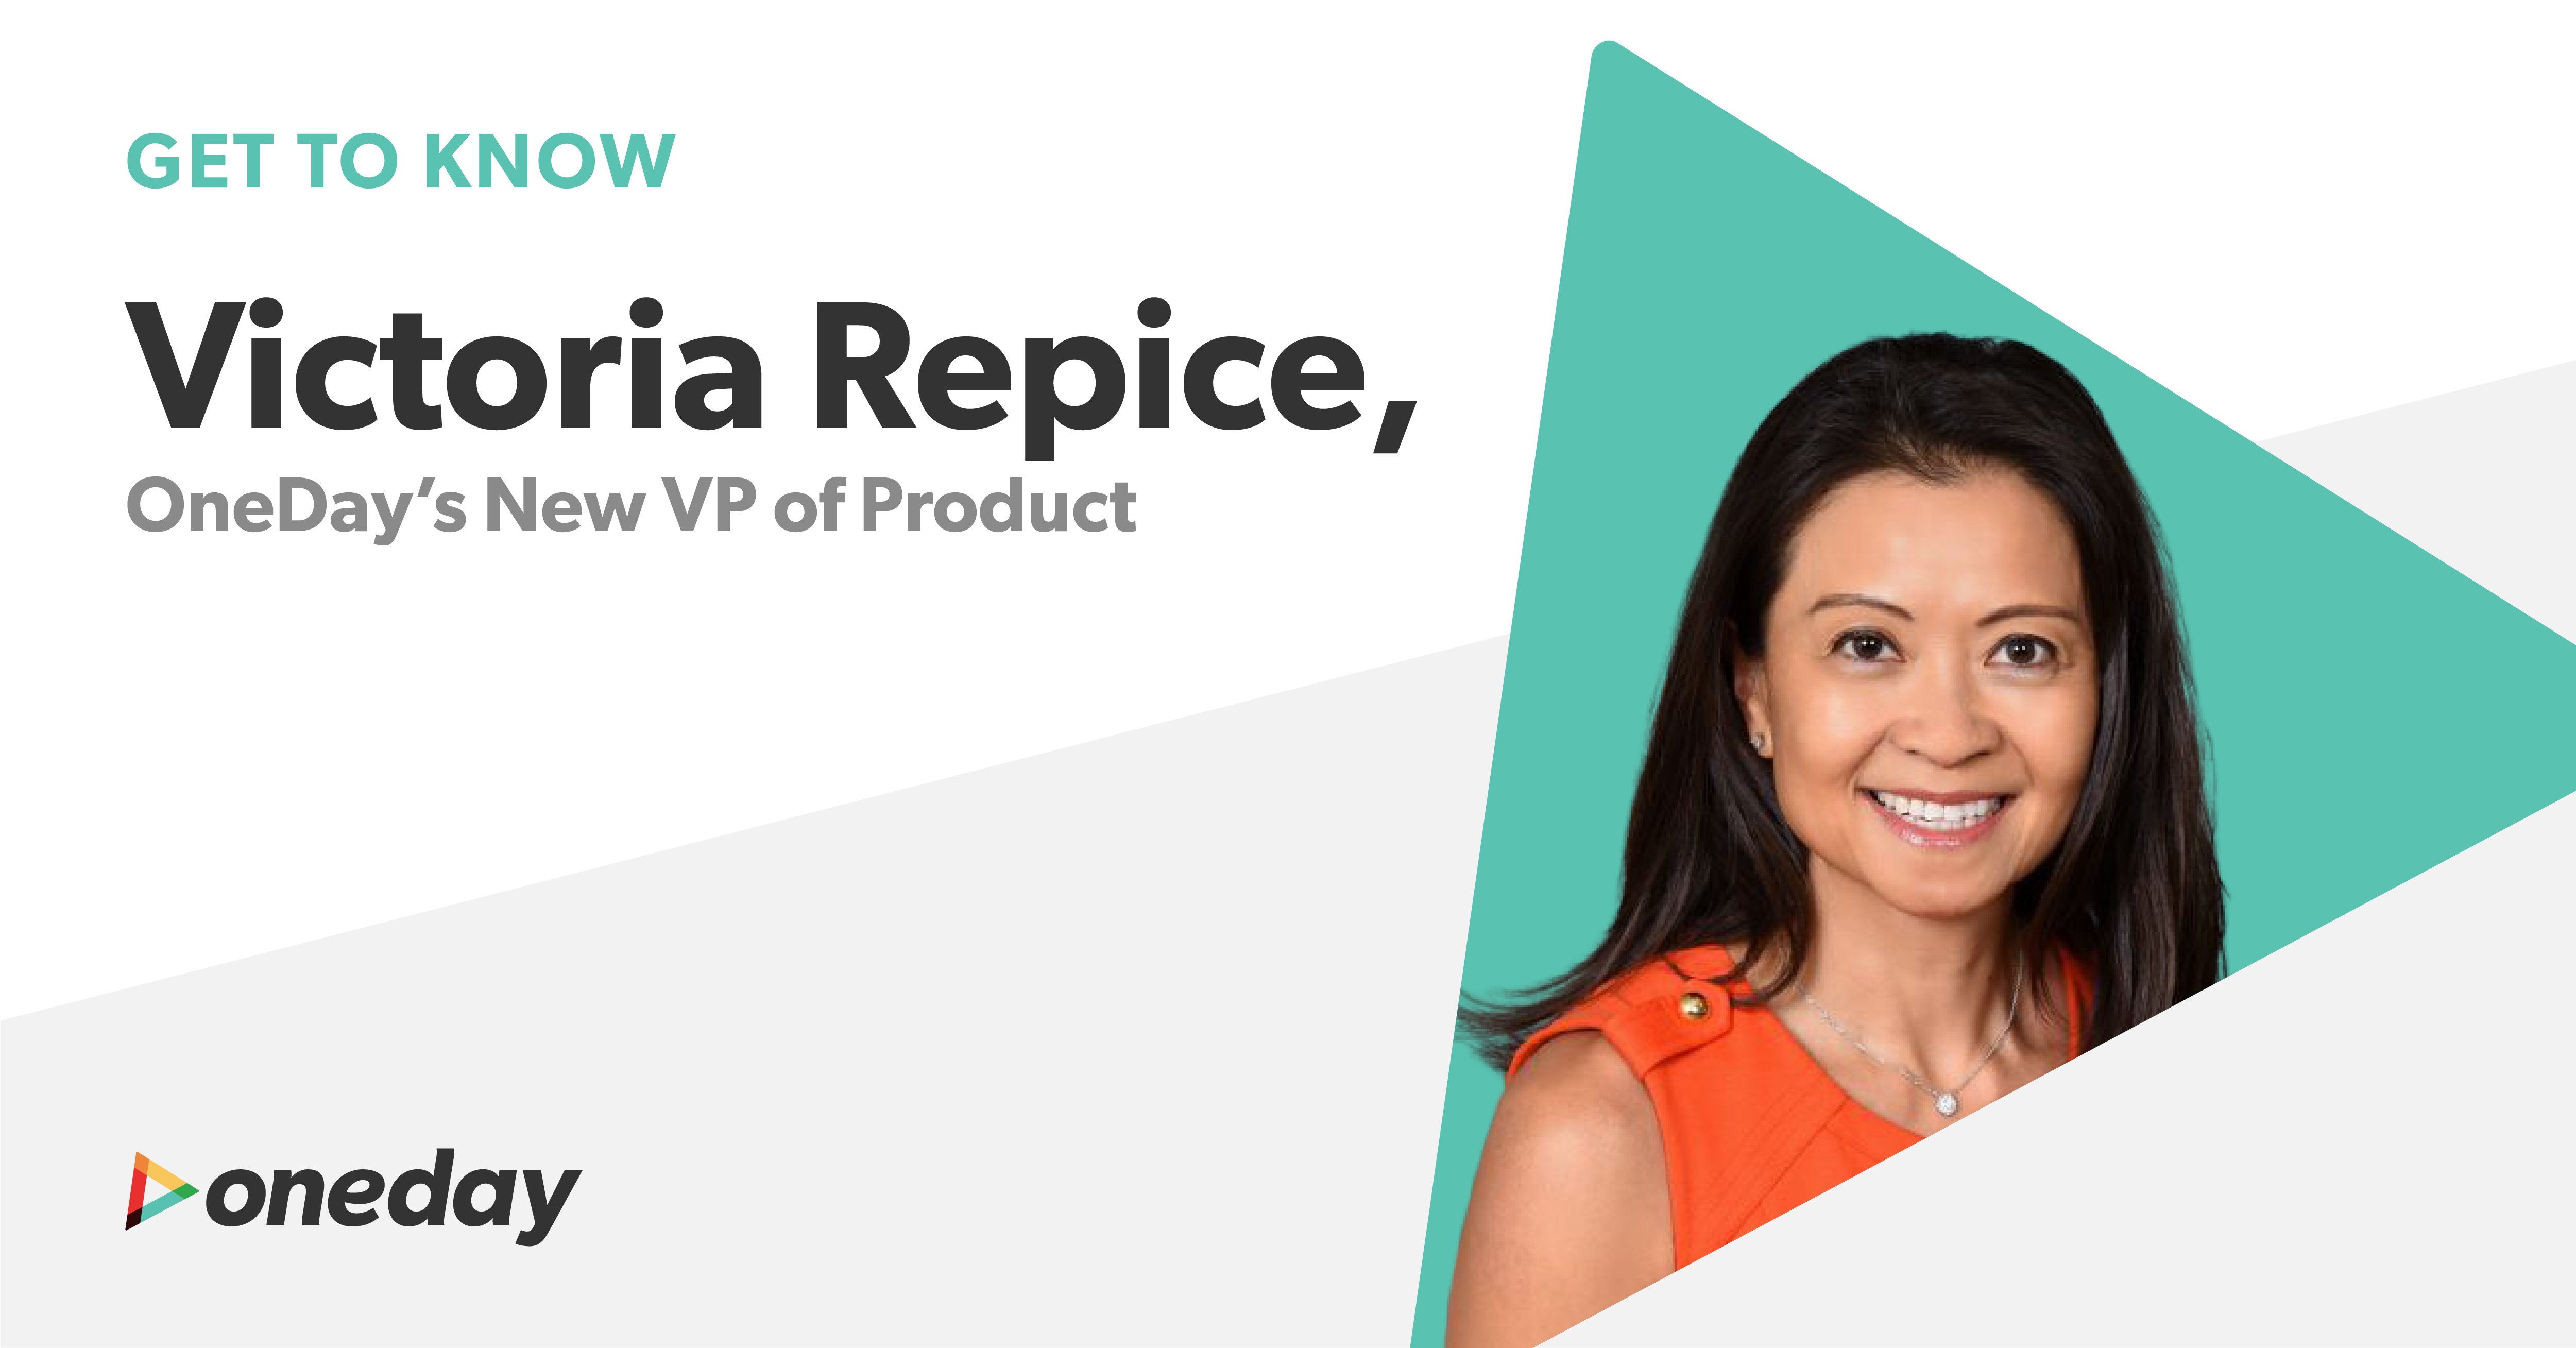 Get to know OneDay's new VP of Product, Victoria Repice, who provides our team with decades of experience in bringing cutting-edge products to market.